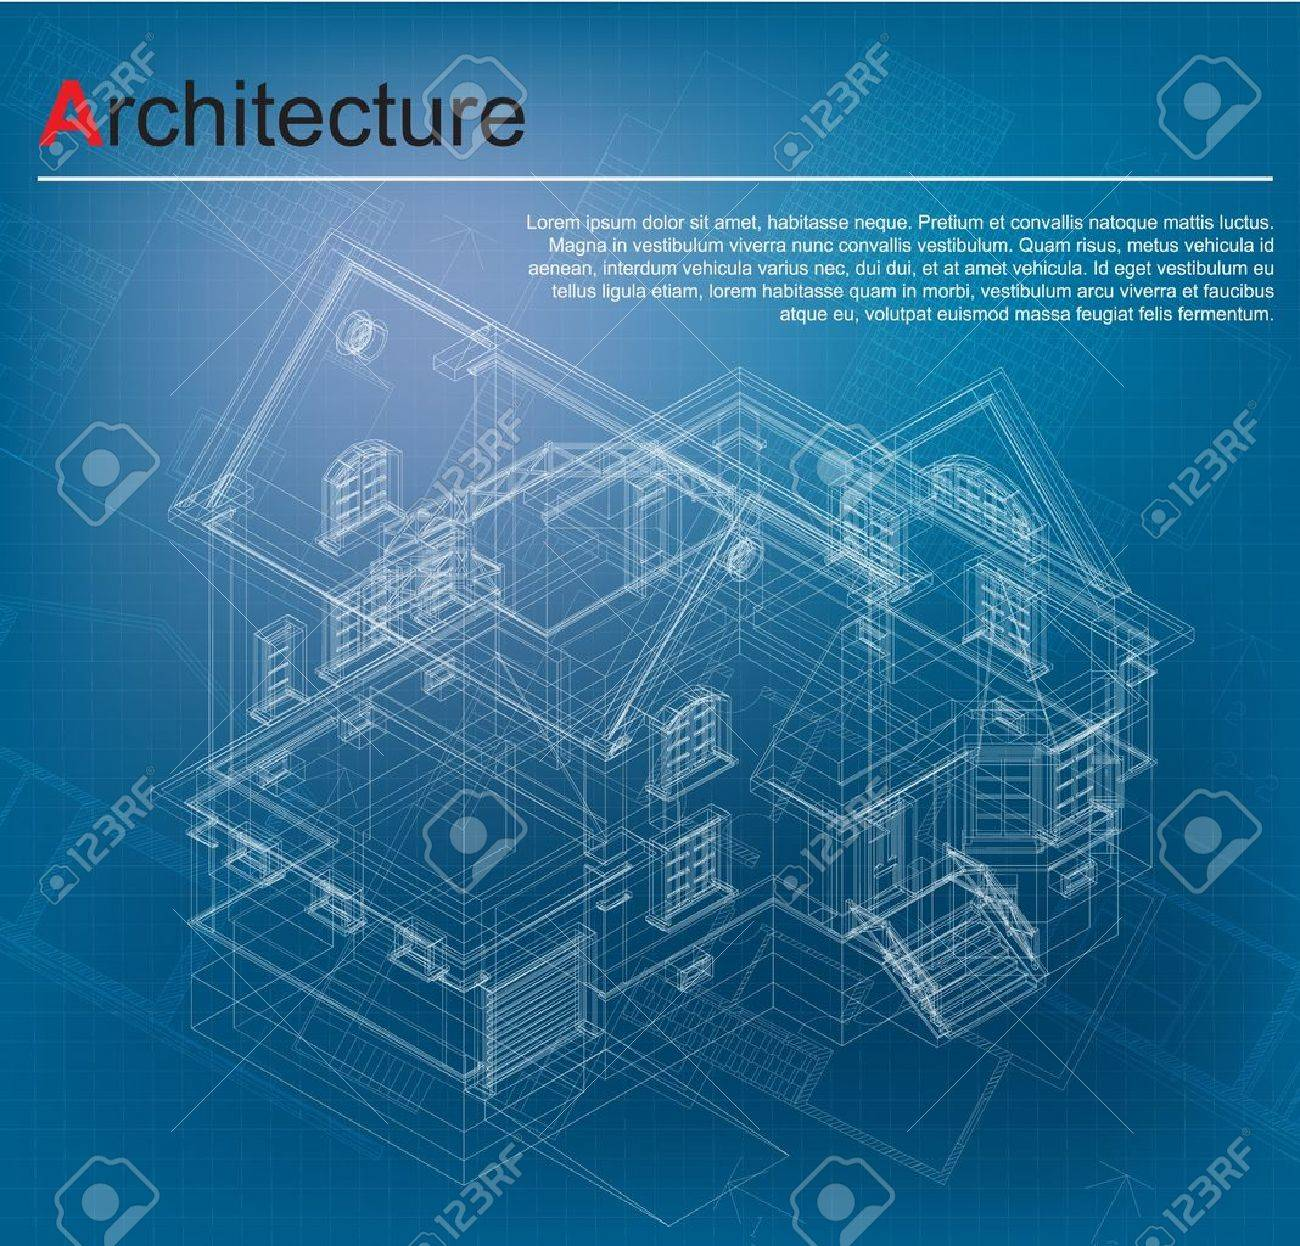 Urban blueprint vector architectural background part of urban blueprint vector architectural background part of architectural project architectural plan technical project malvernweather Gallery